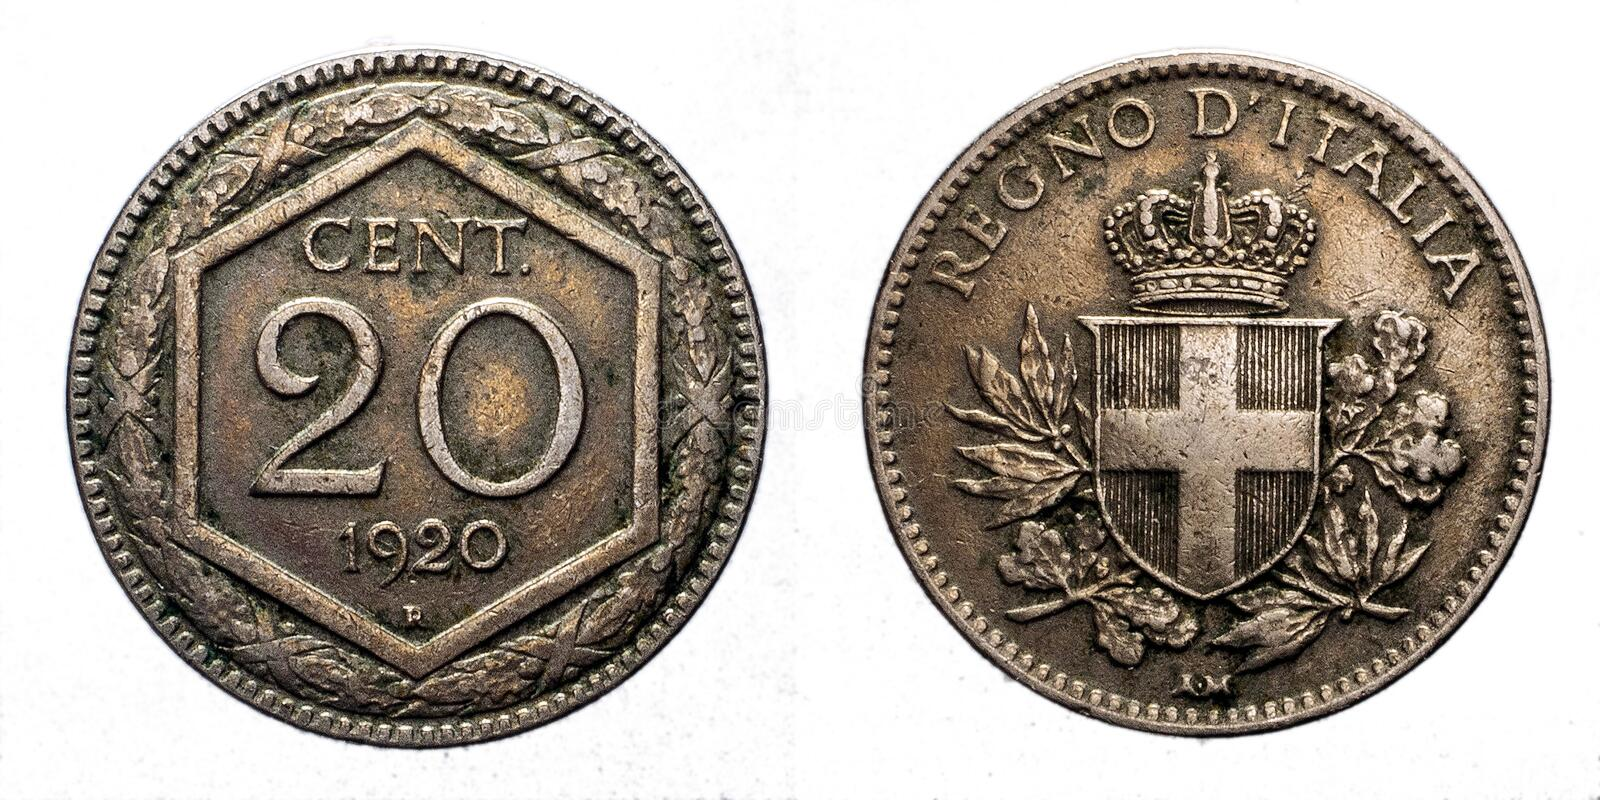 Twenty 20 cents Lire Silver Coin 1920 Exagon Crown Savoy Shield Vittorio Emanuele III Kingdom of Italy. Twenty 20 cents Lire Silver Coin 1920 Exagon on front and royalty free stock images